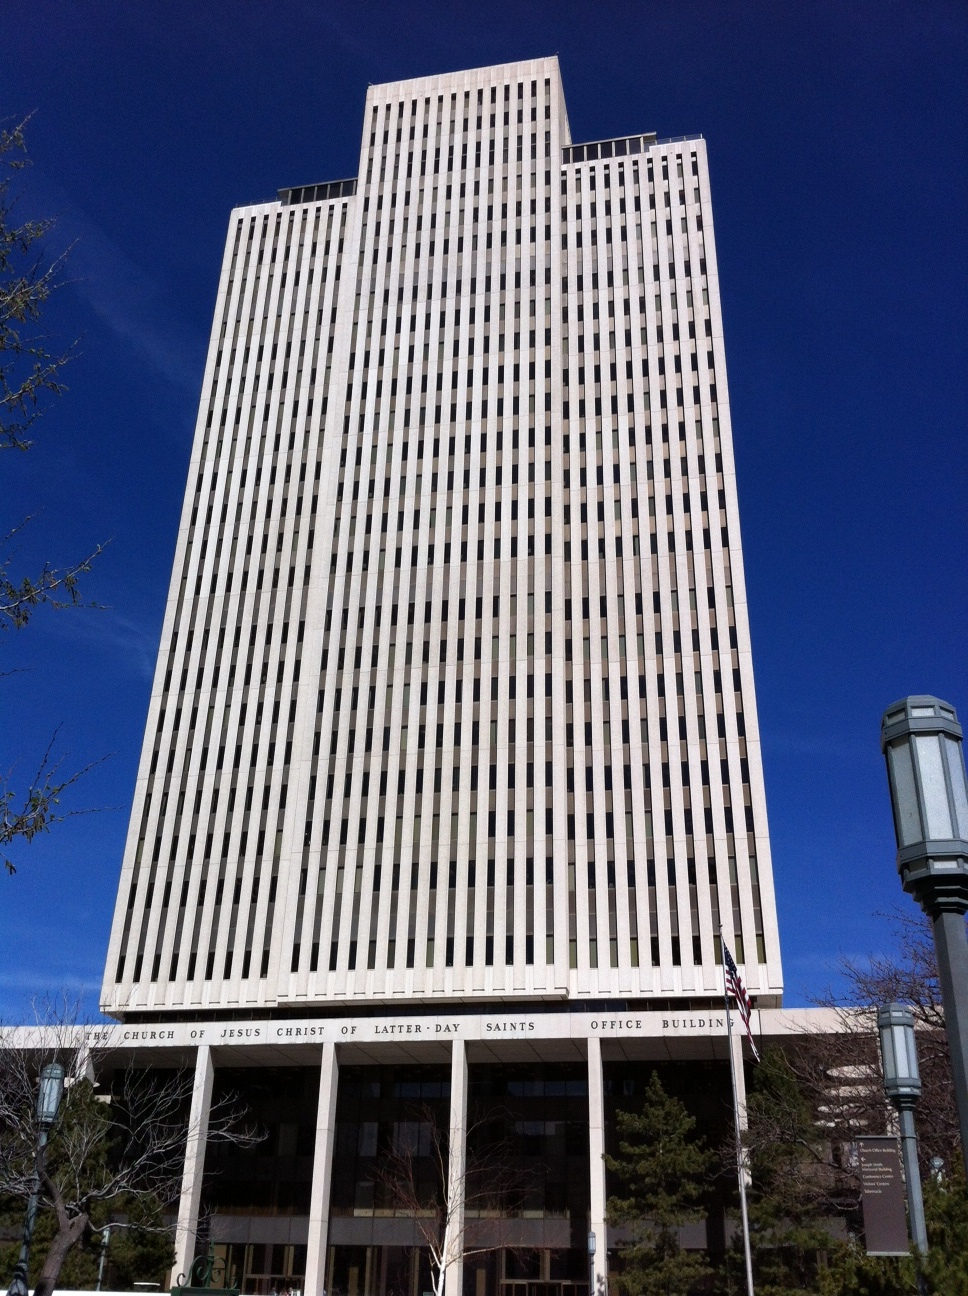 The Church of Jesus Christ of Latter-Day Saints Office Building at 26 floors, towers over the Temple campus.  Its strong, vertical lines give it an uplifting skyscraper quality that is usually associated with much taller office buildings.